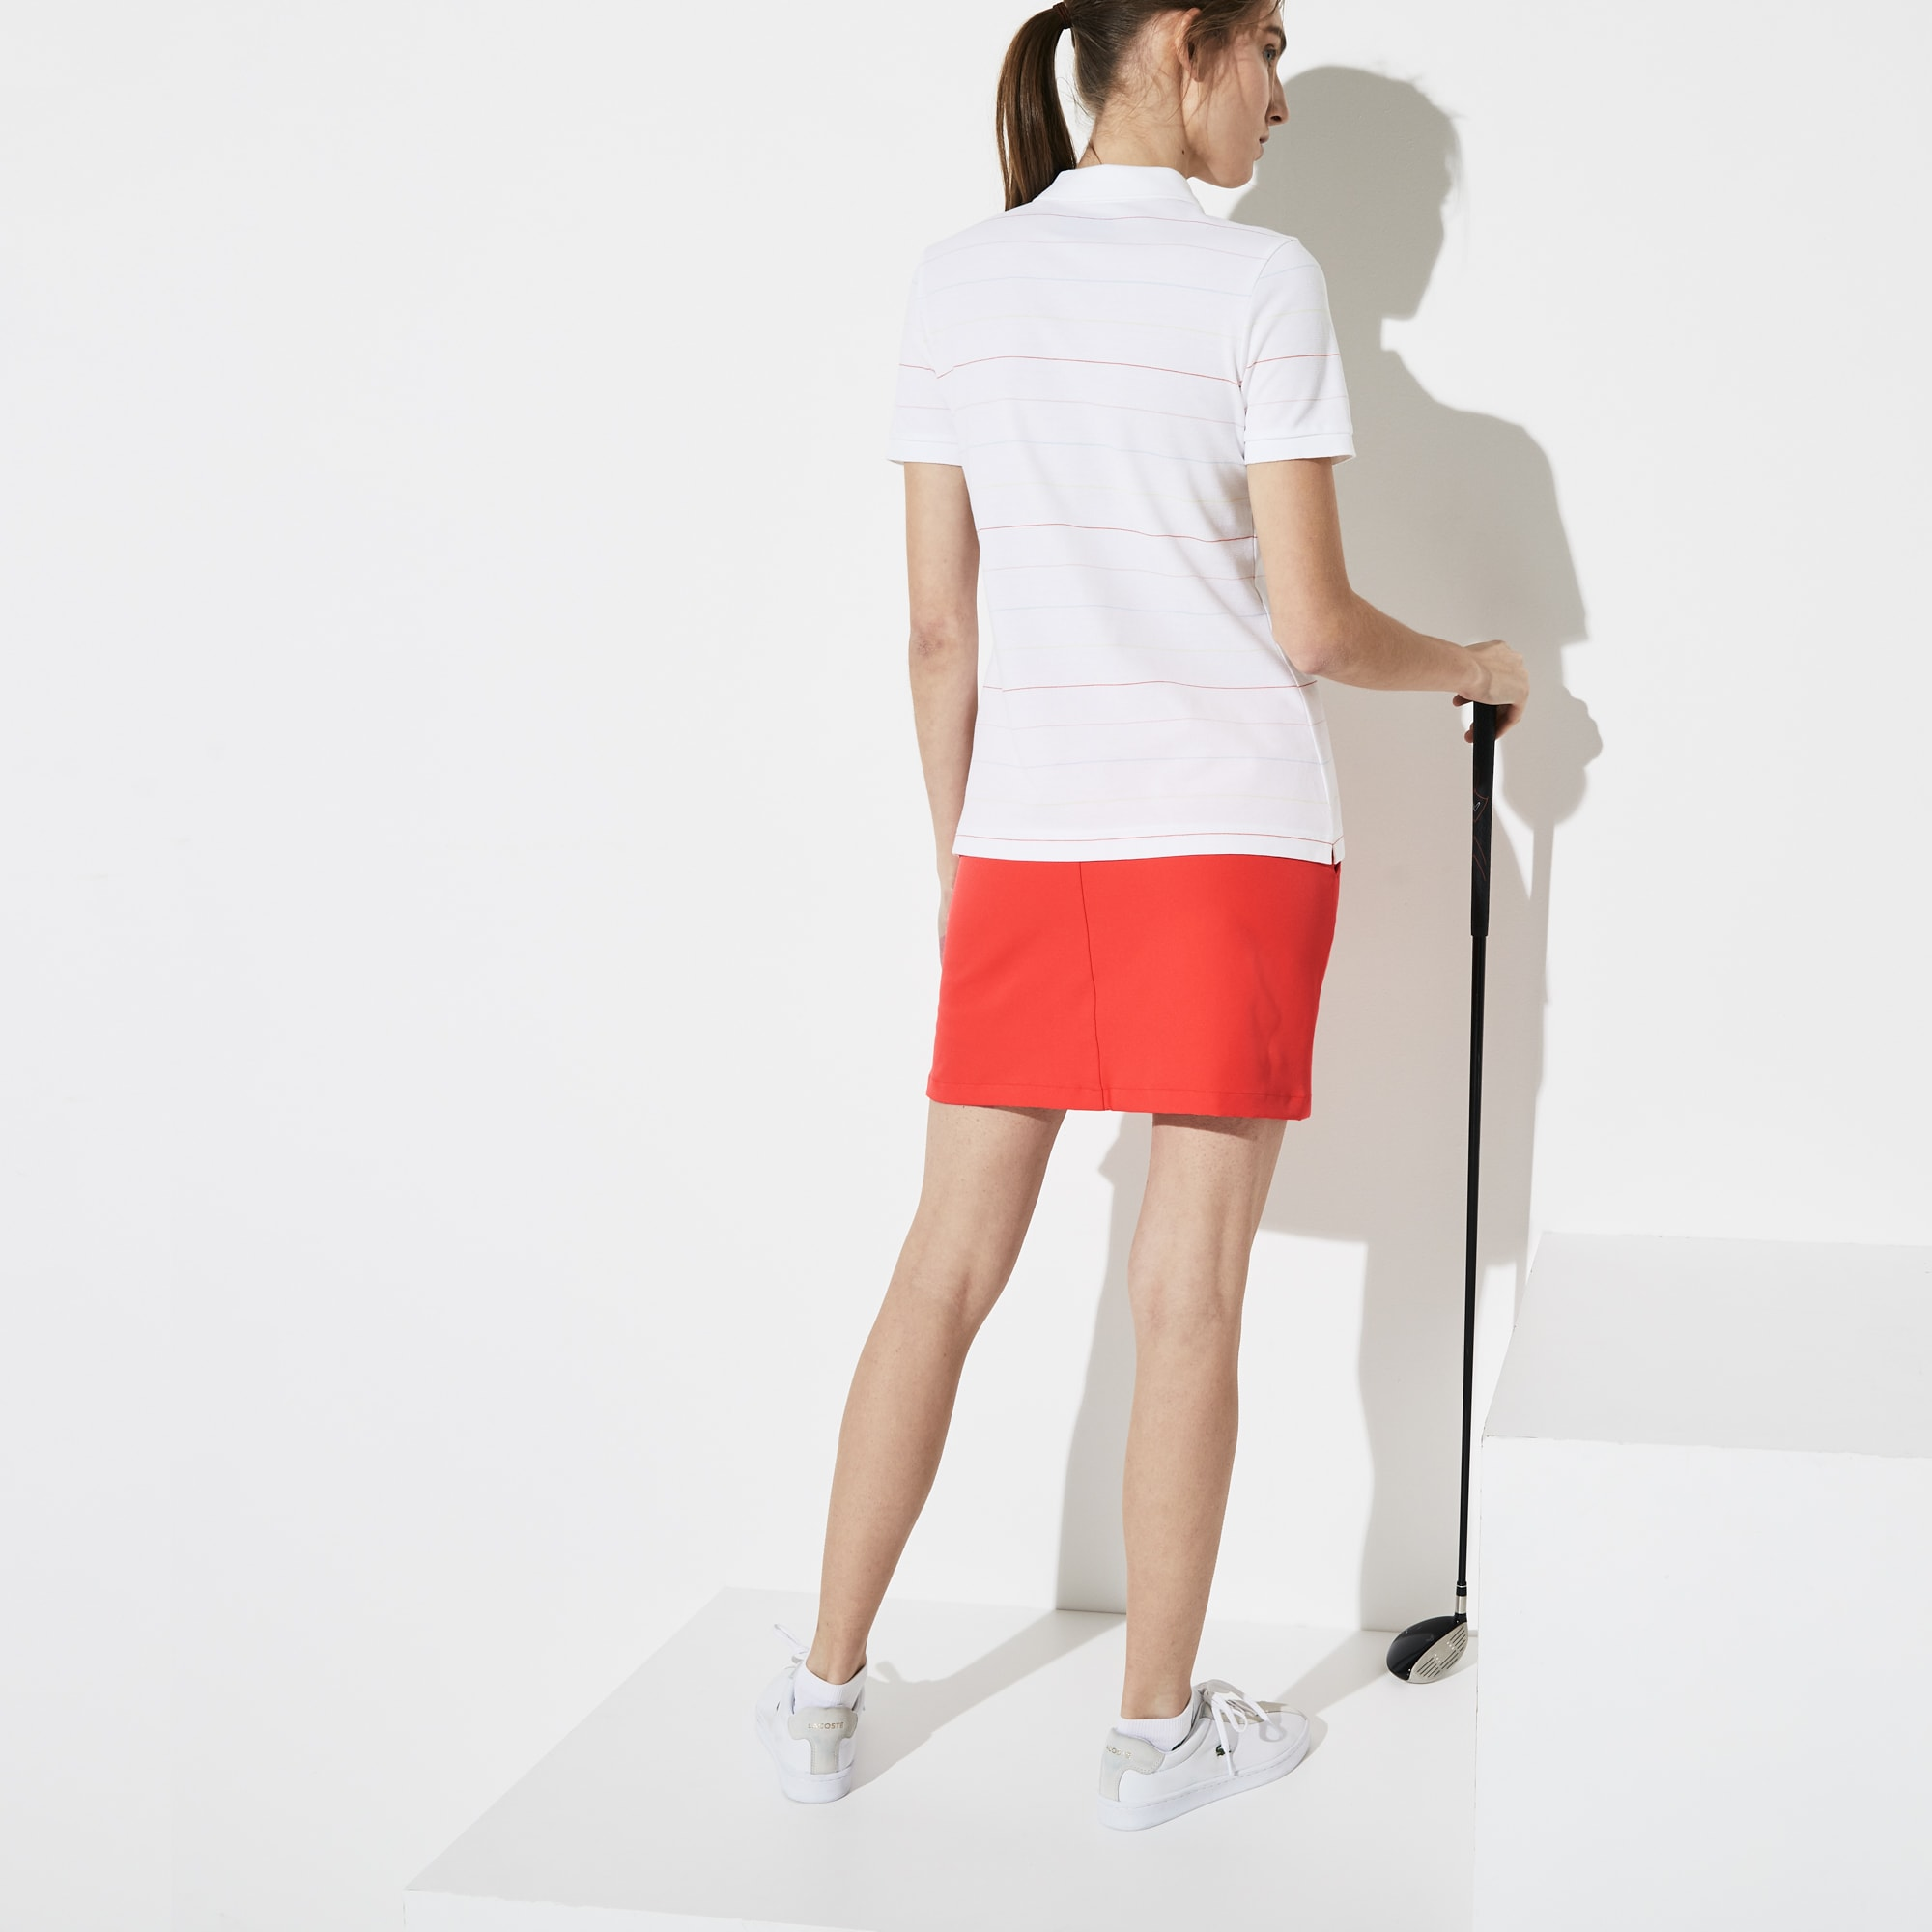 Women's Lacoste SPORT Technical Gabardine Golf Skirt